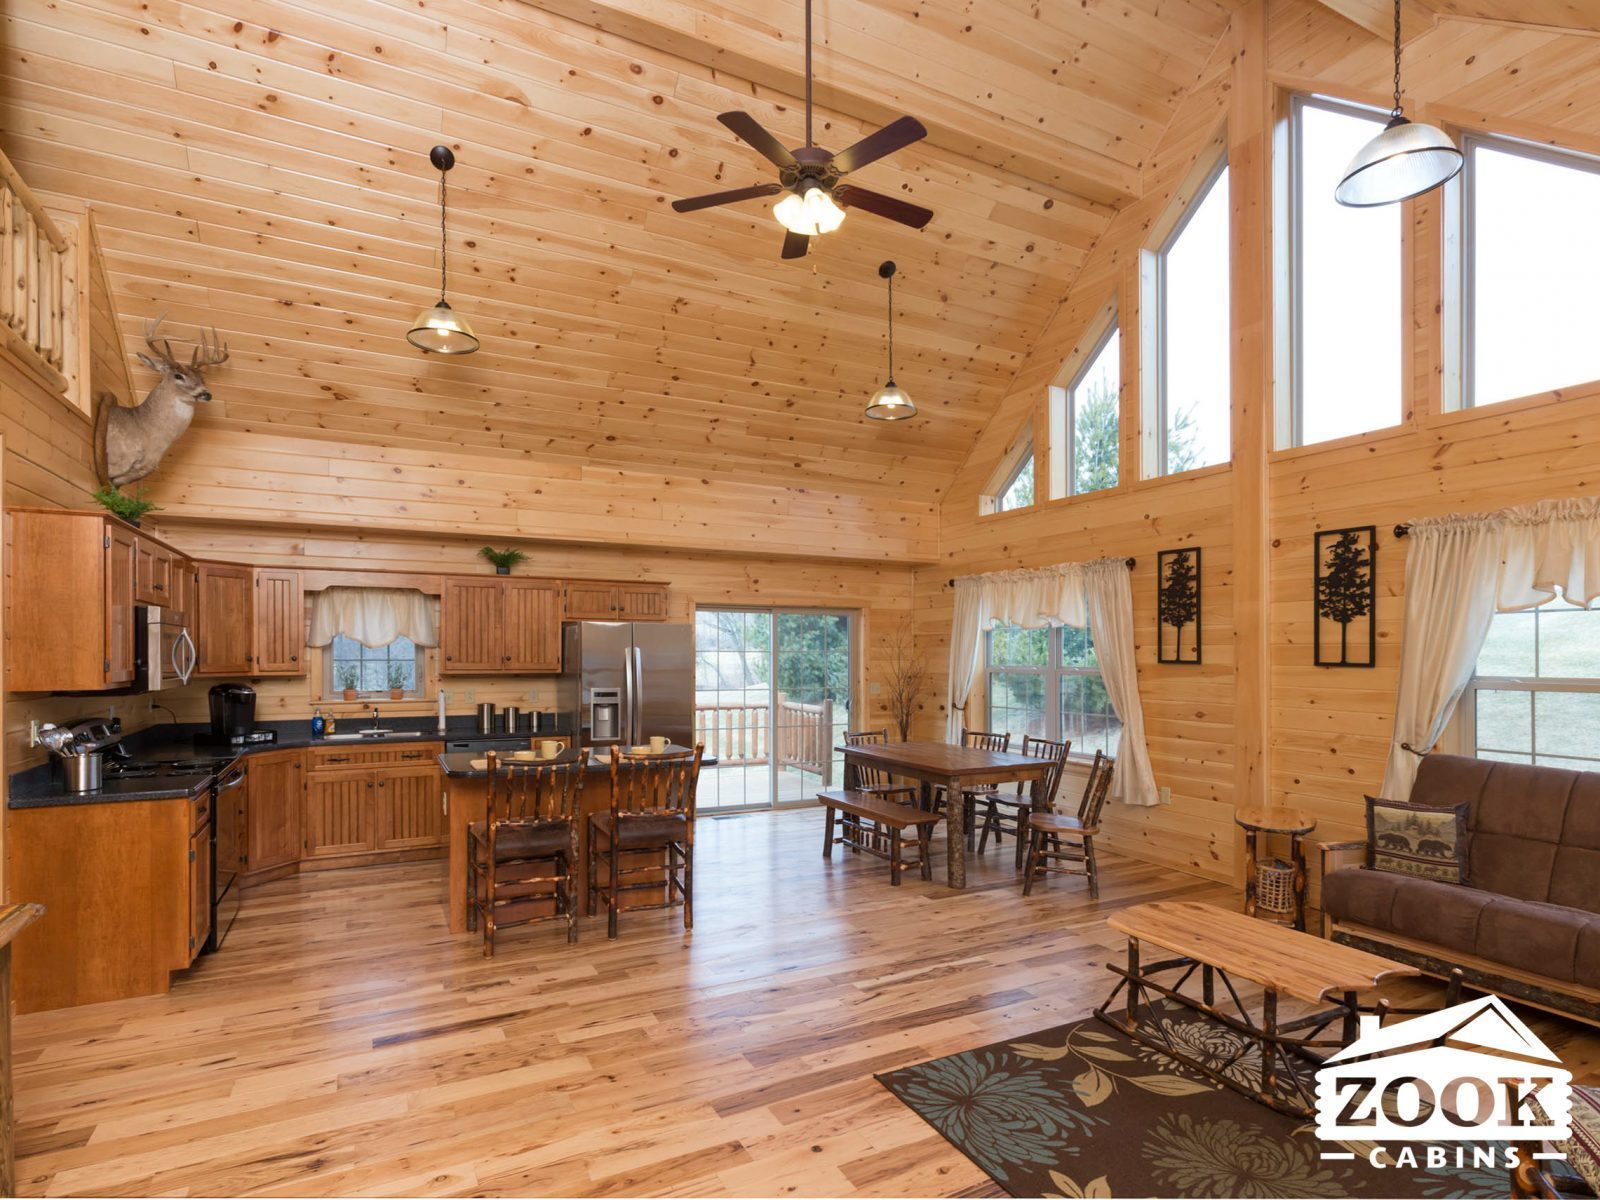 The interior of a log cabin